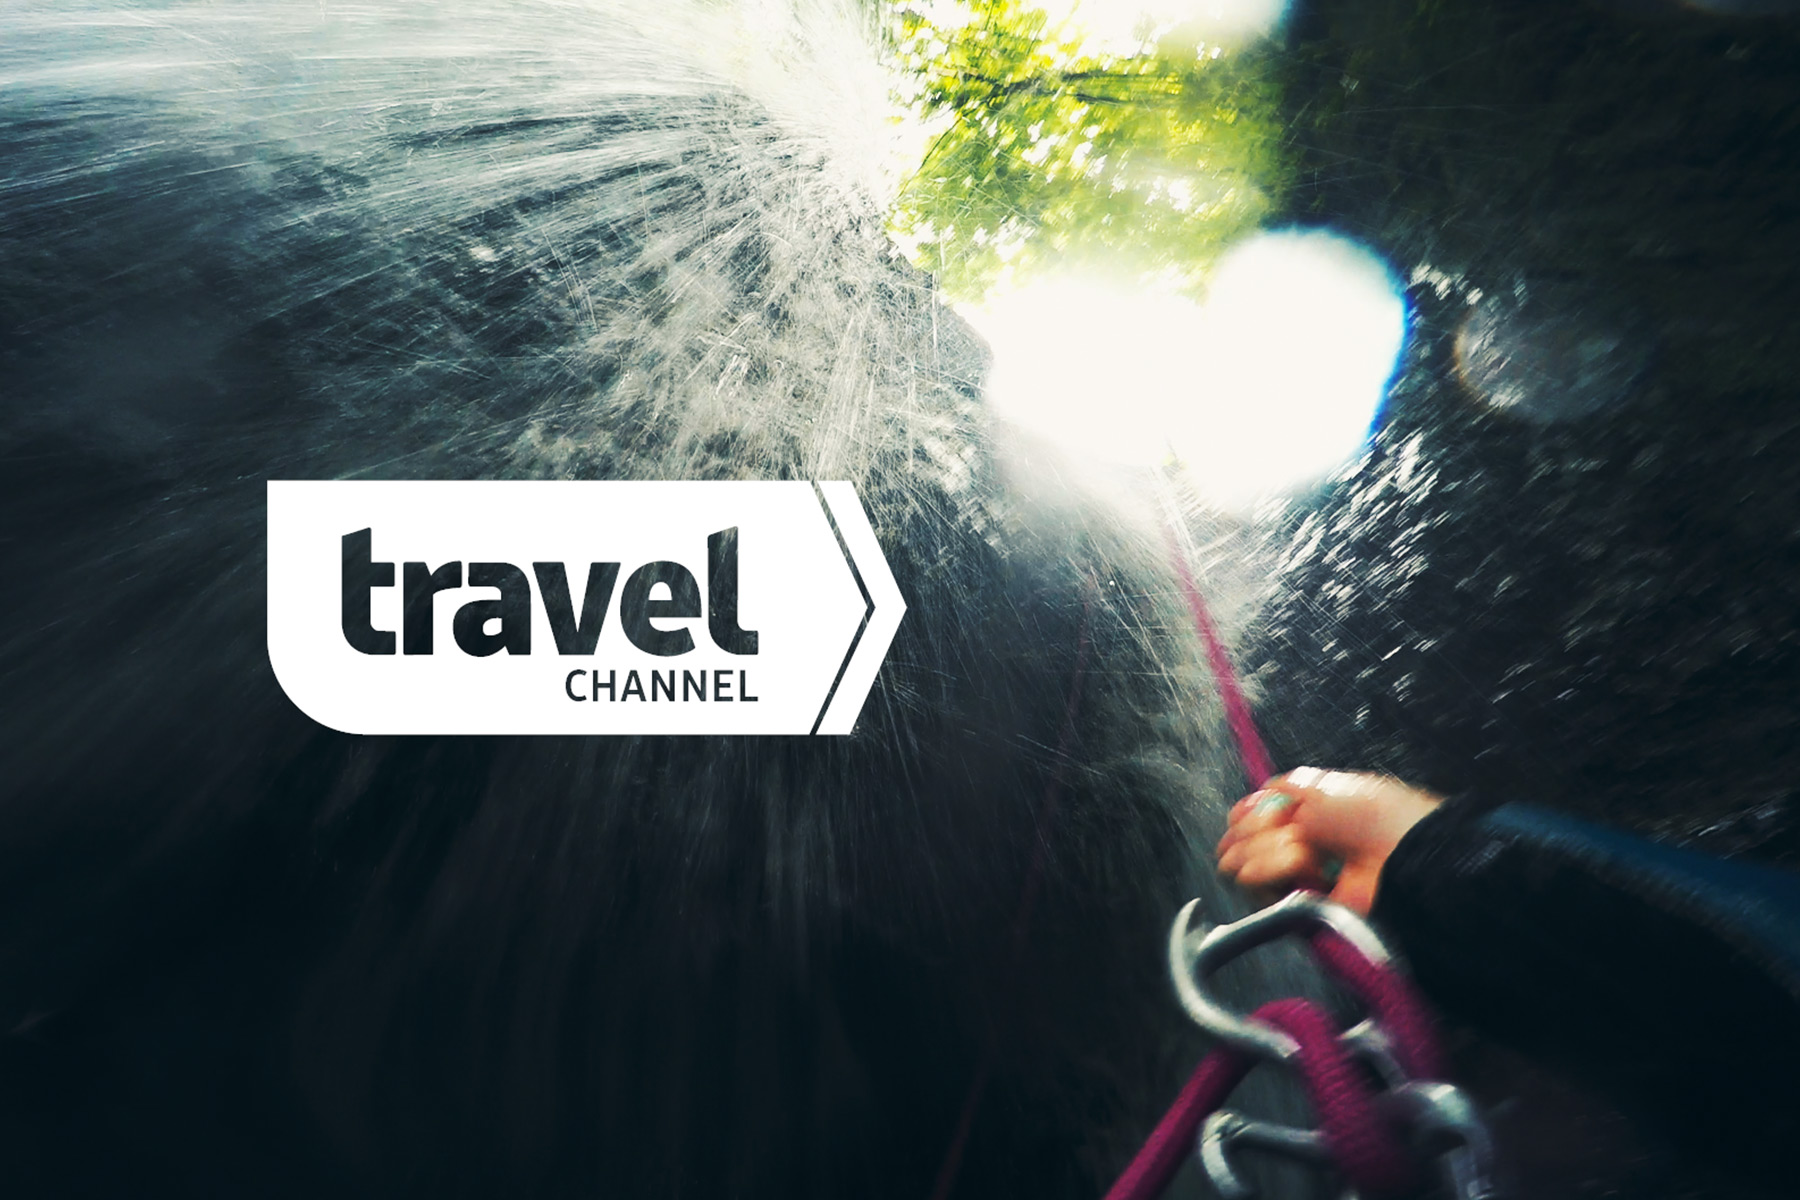 famous-rebel-travel-channel-ident2